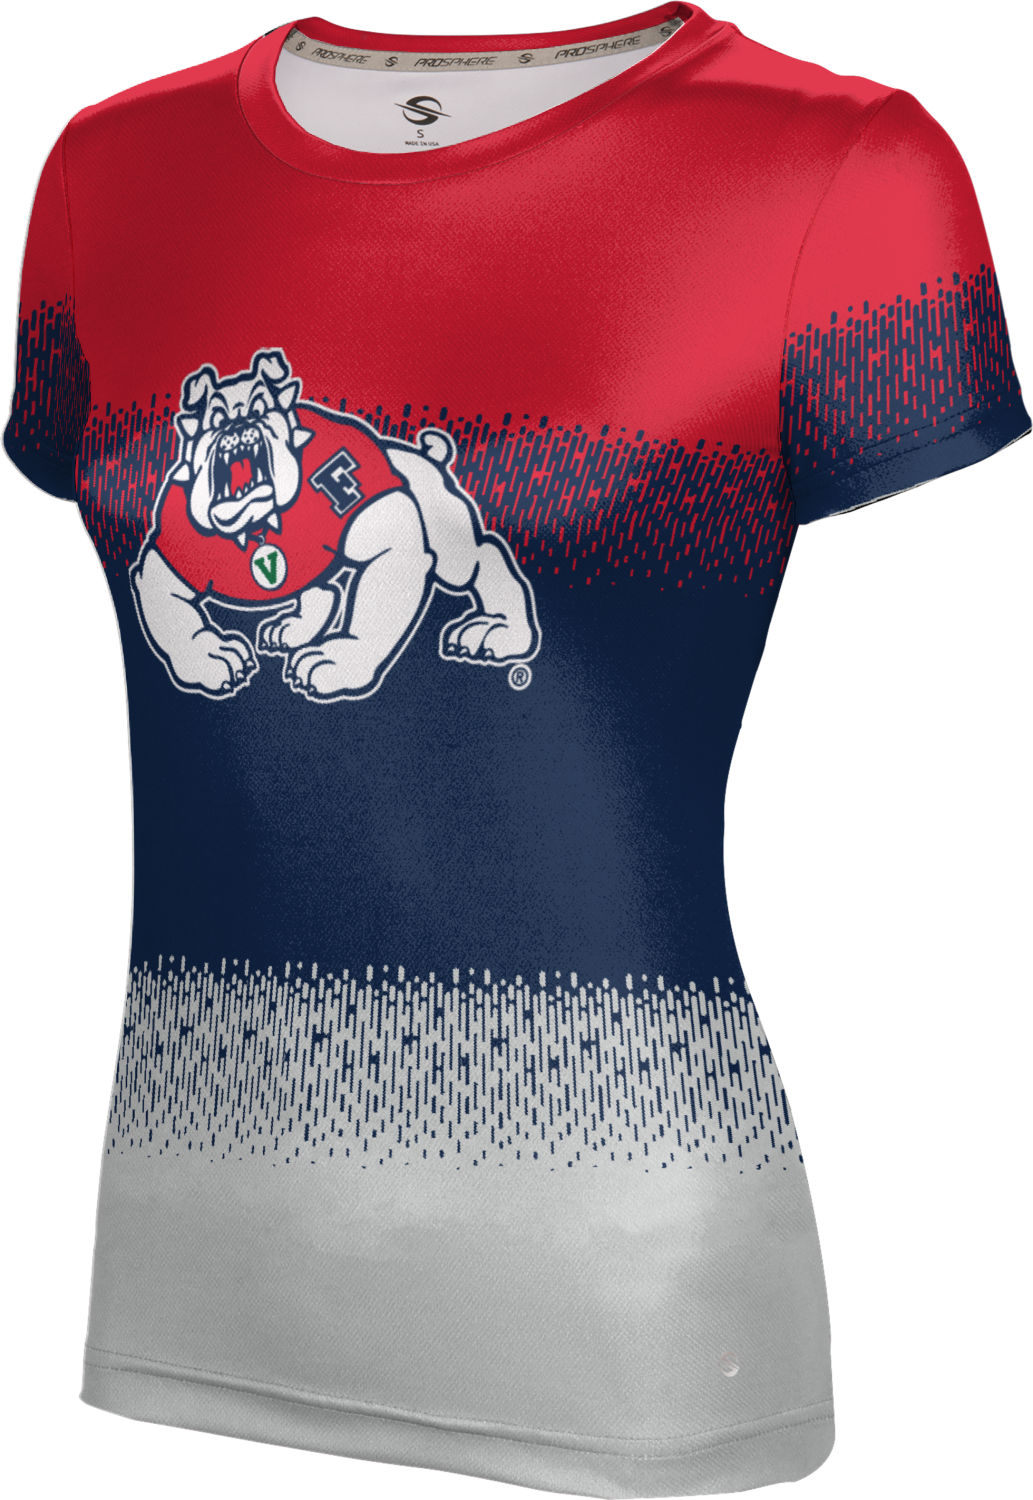 ProSphere Girls' Fresno State University Drip Tech Tee